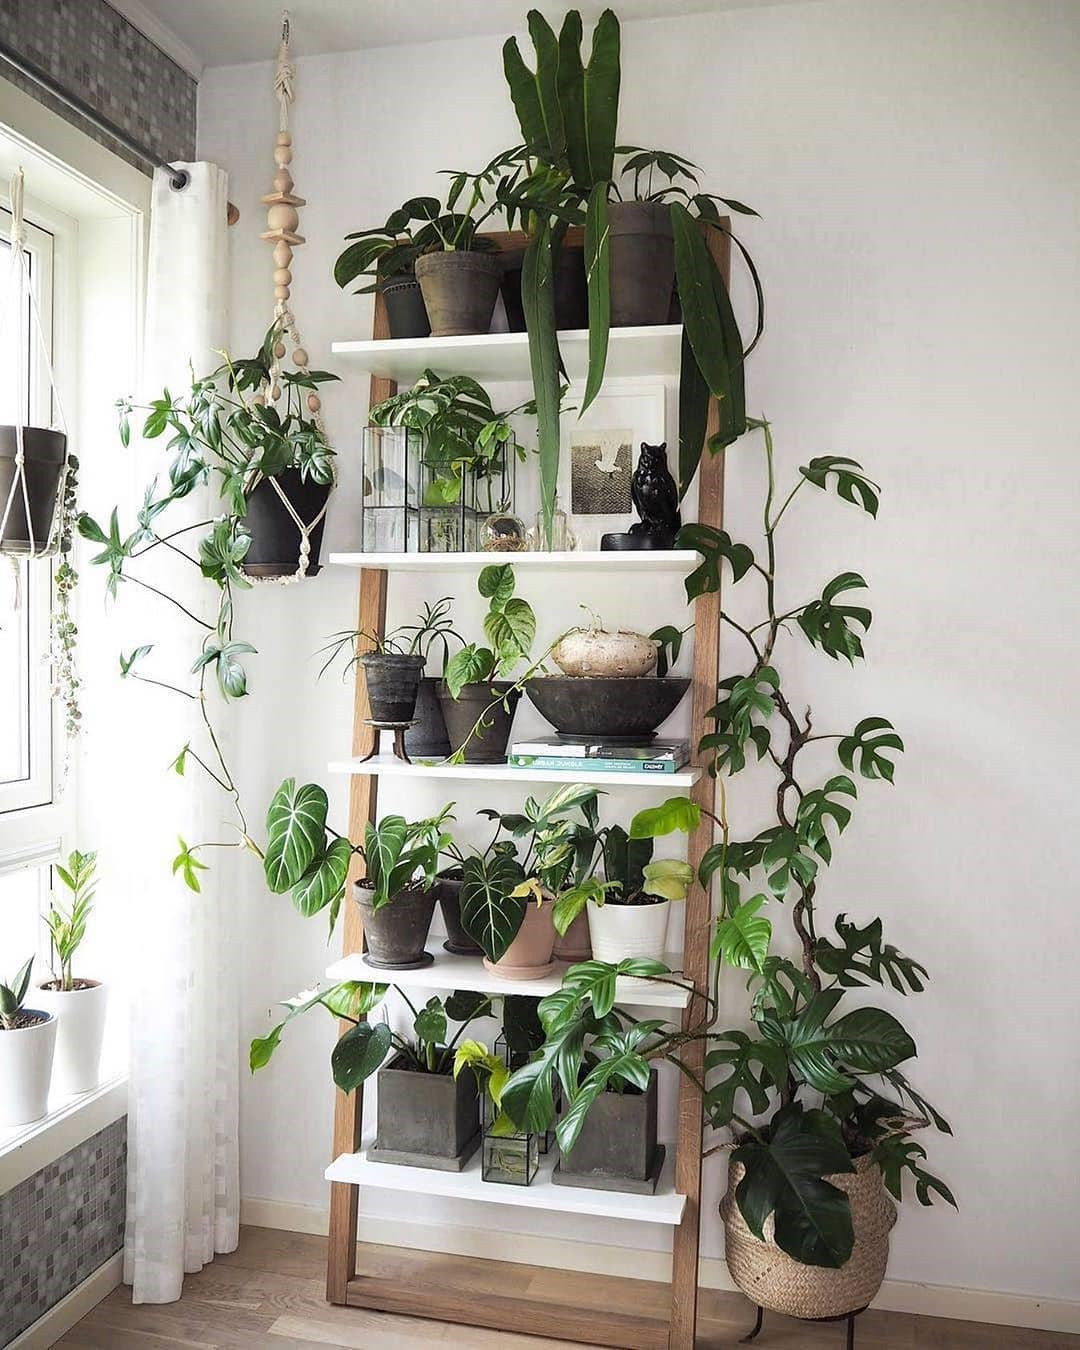 46 DIY Plant Stand ideas to Fill Your Living Room With Greenery